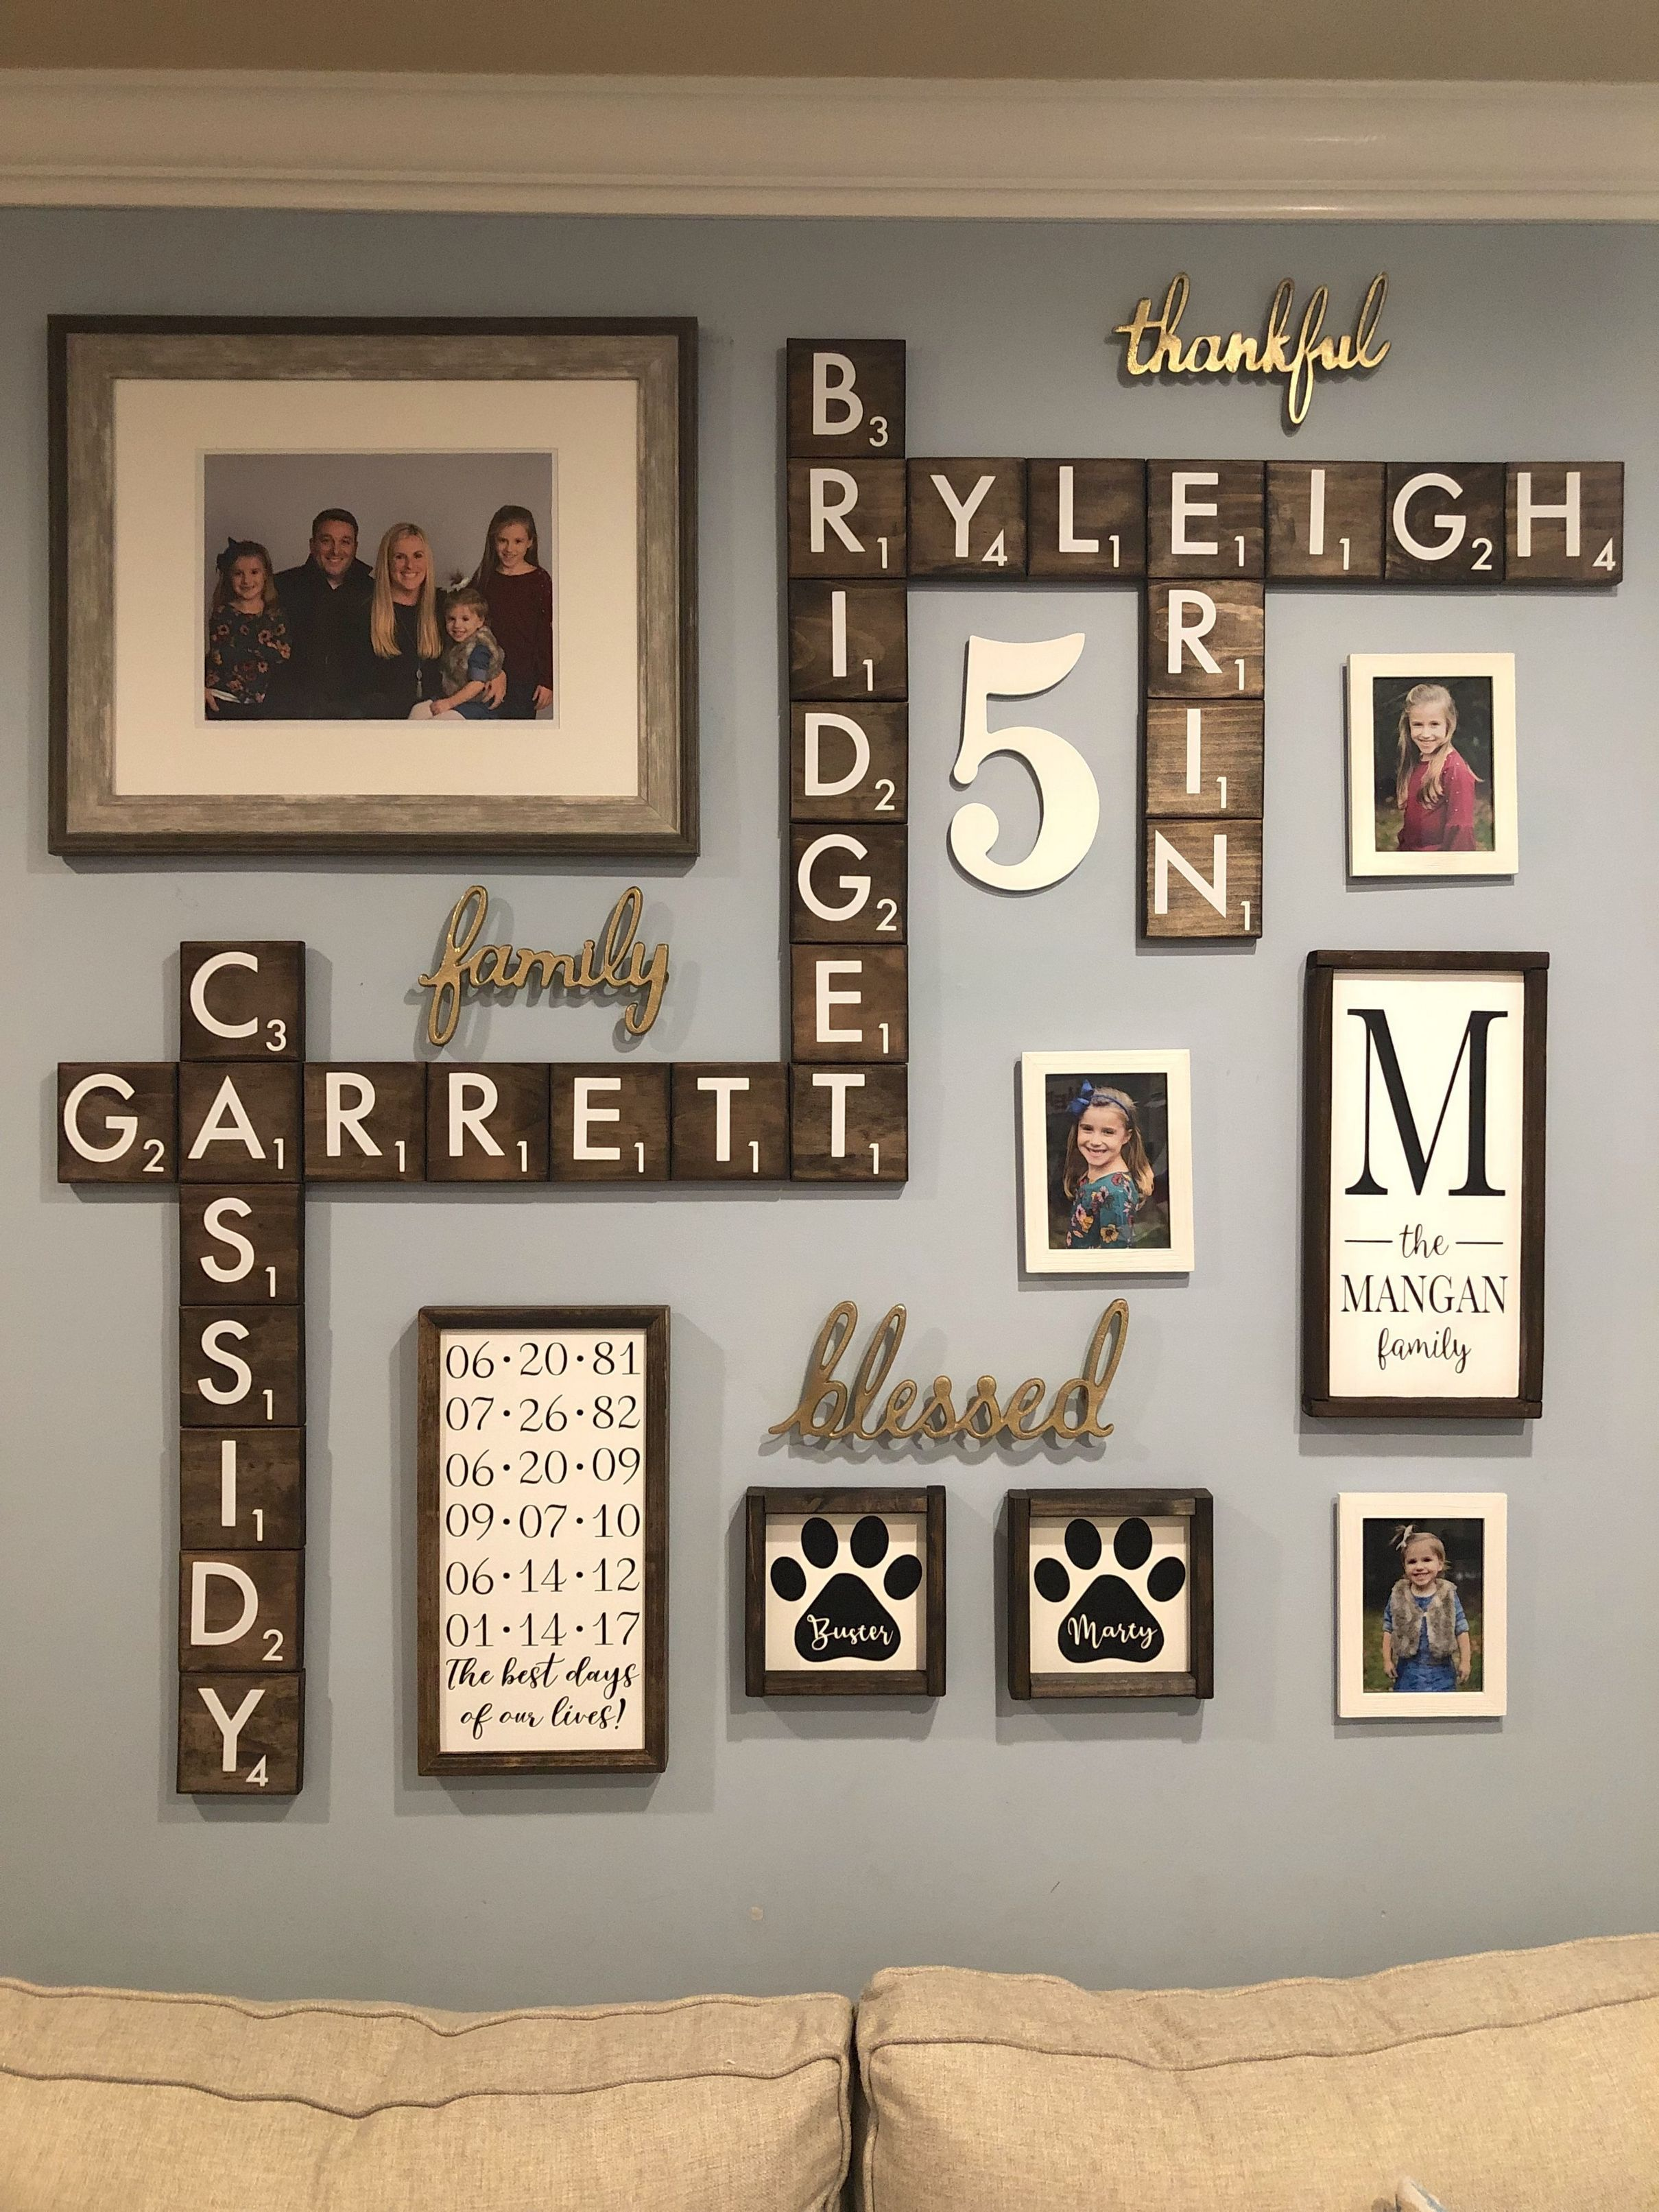 25 Unique Family Picture Wall Ideas In 2020 Family Wall Decor Decor Family Pictures On Wall